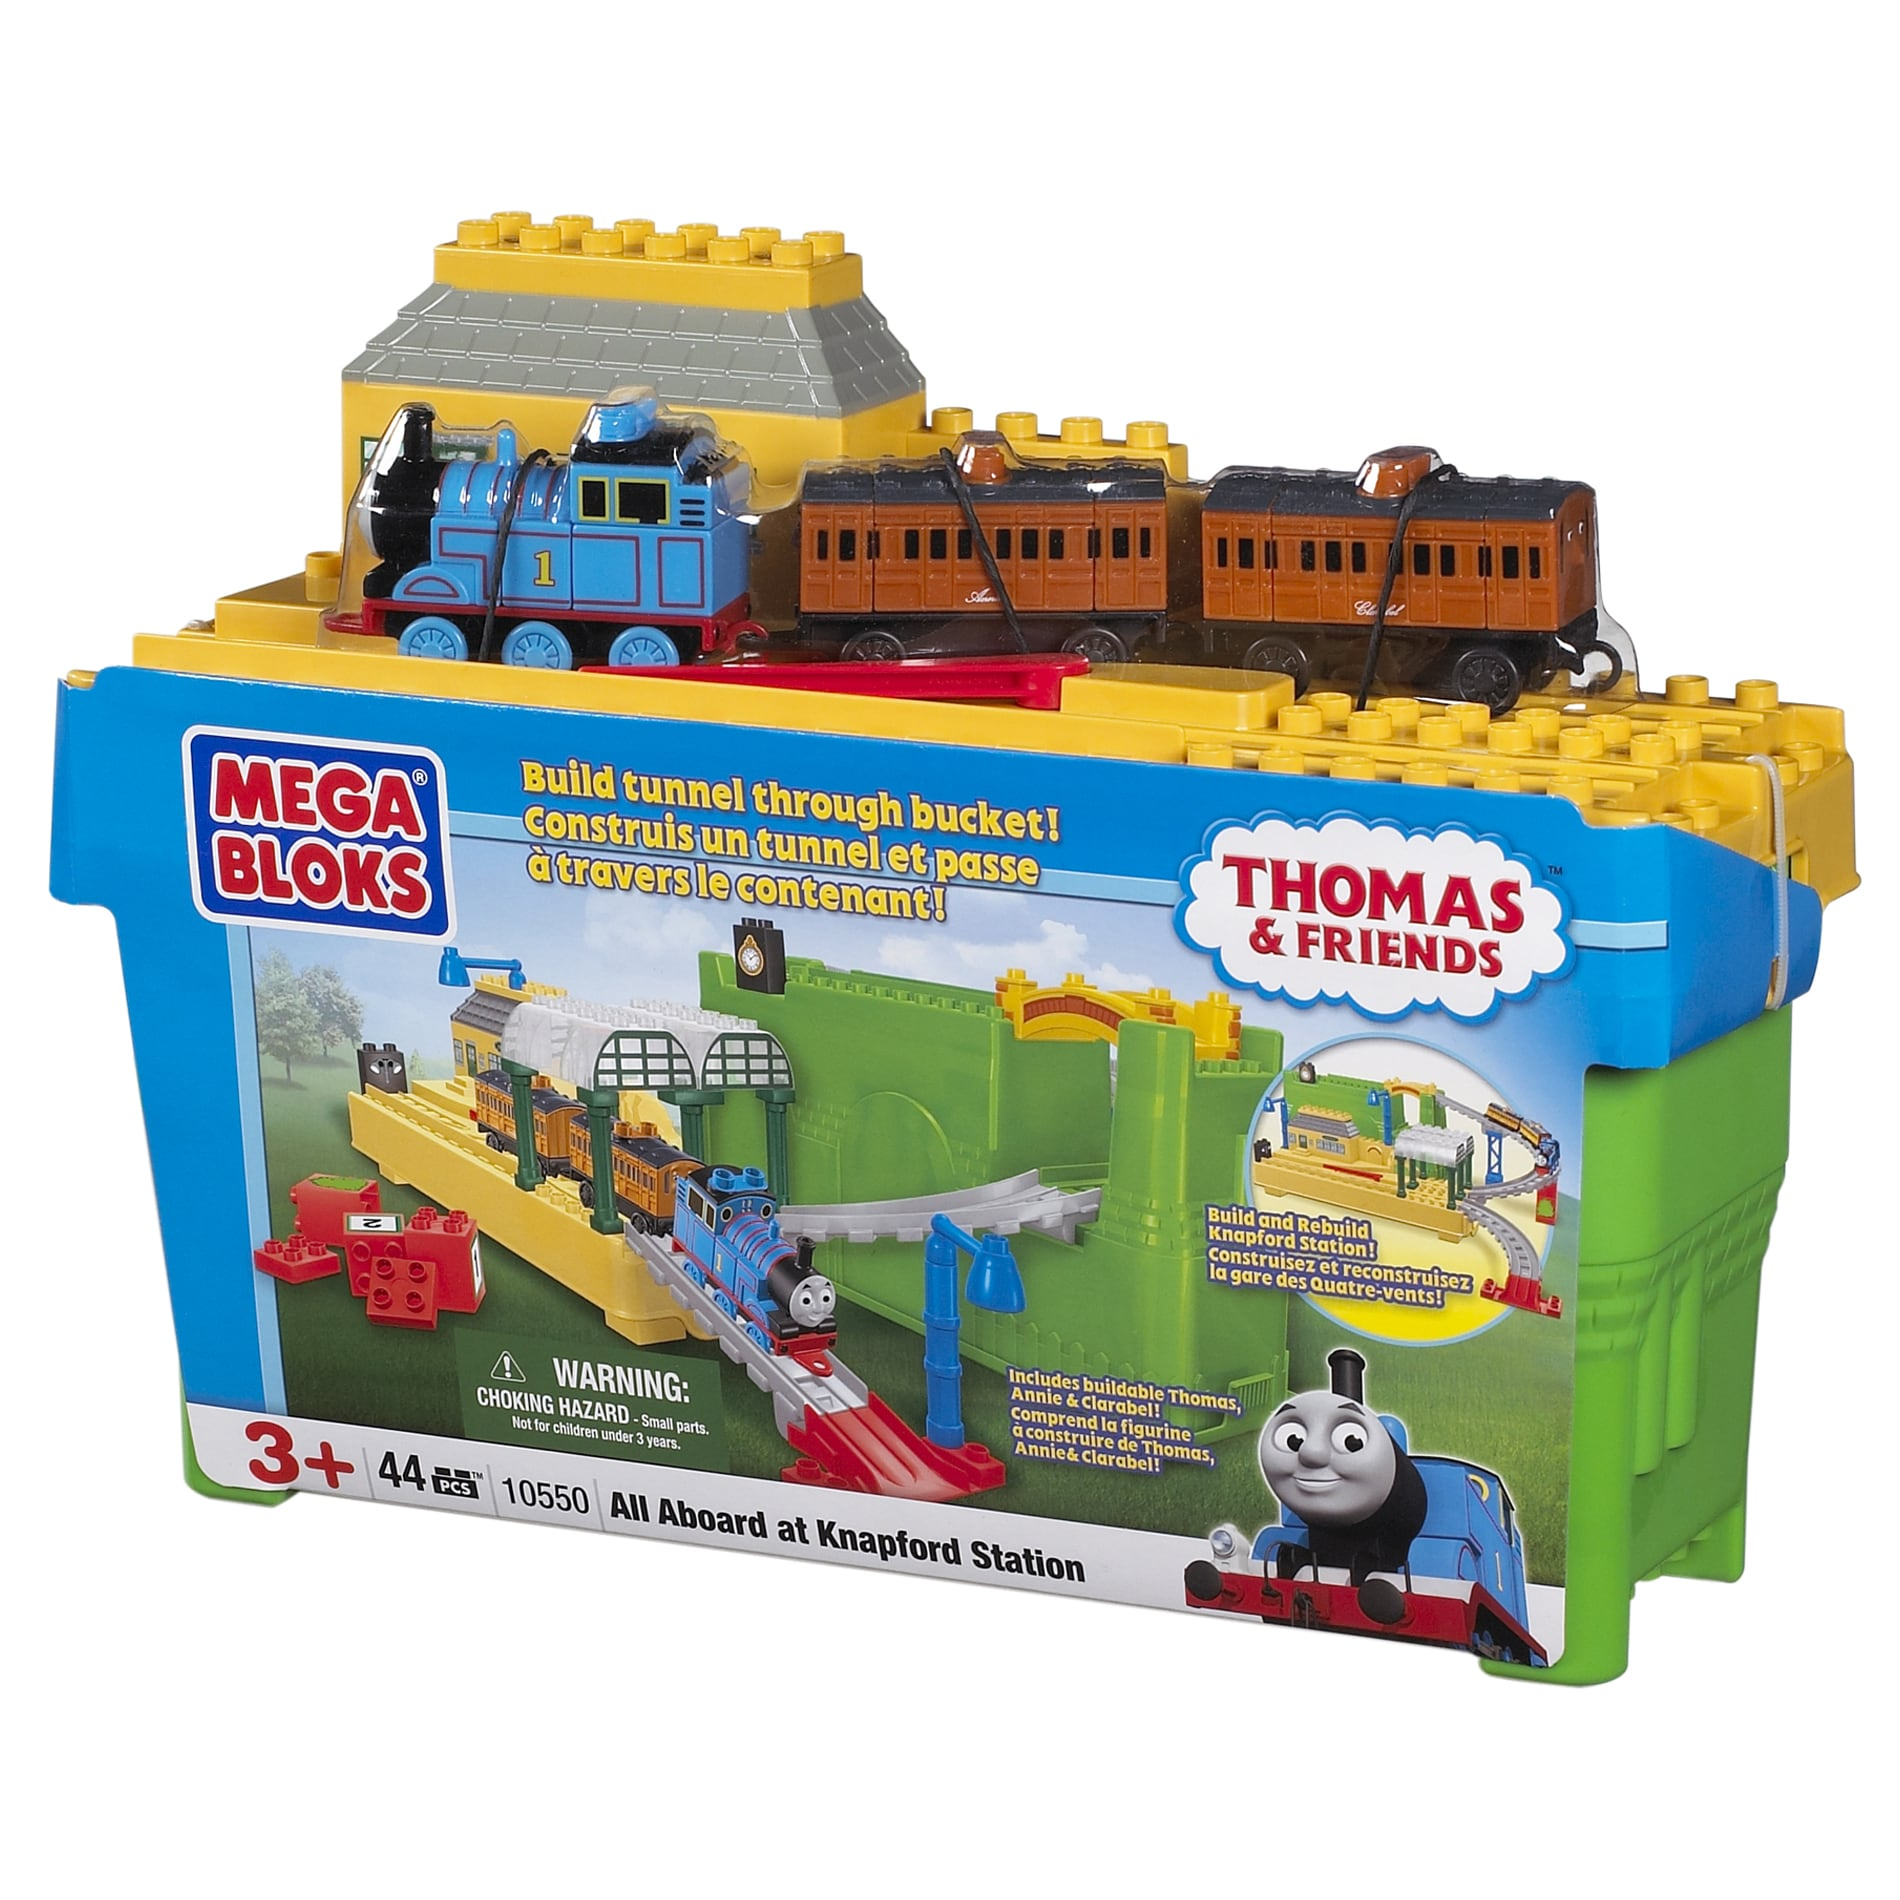 Mega Bloks Thomas and Friends 'All Aboard Knapford Station' Play Set